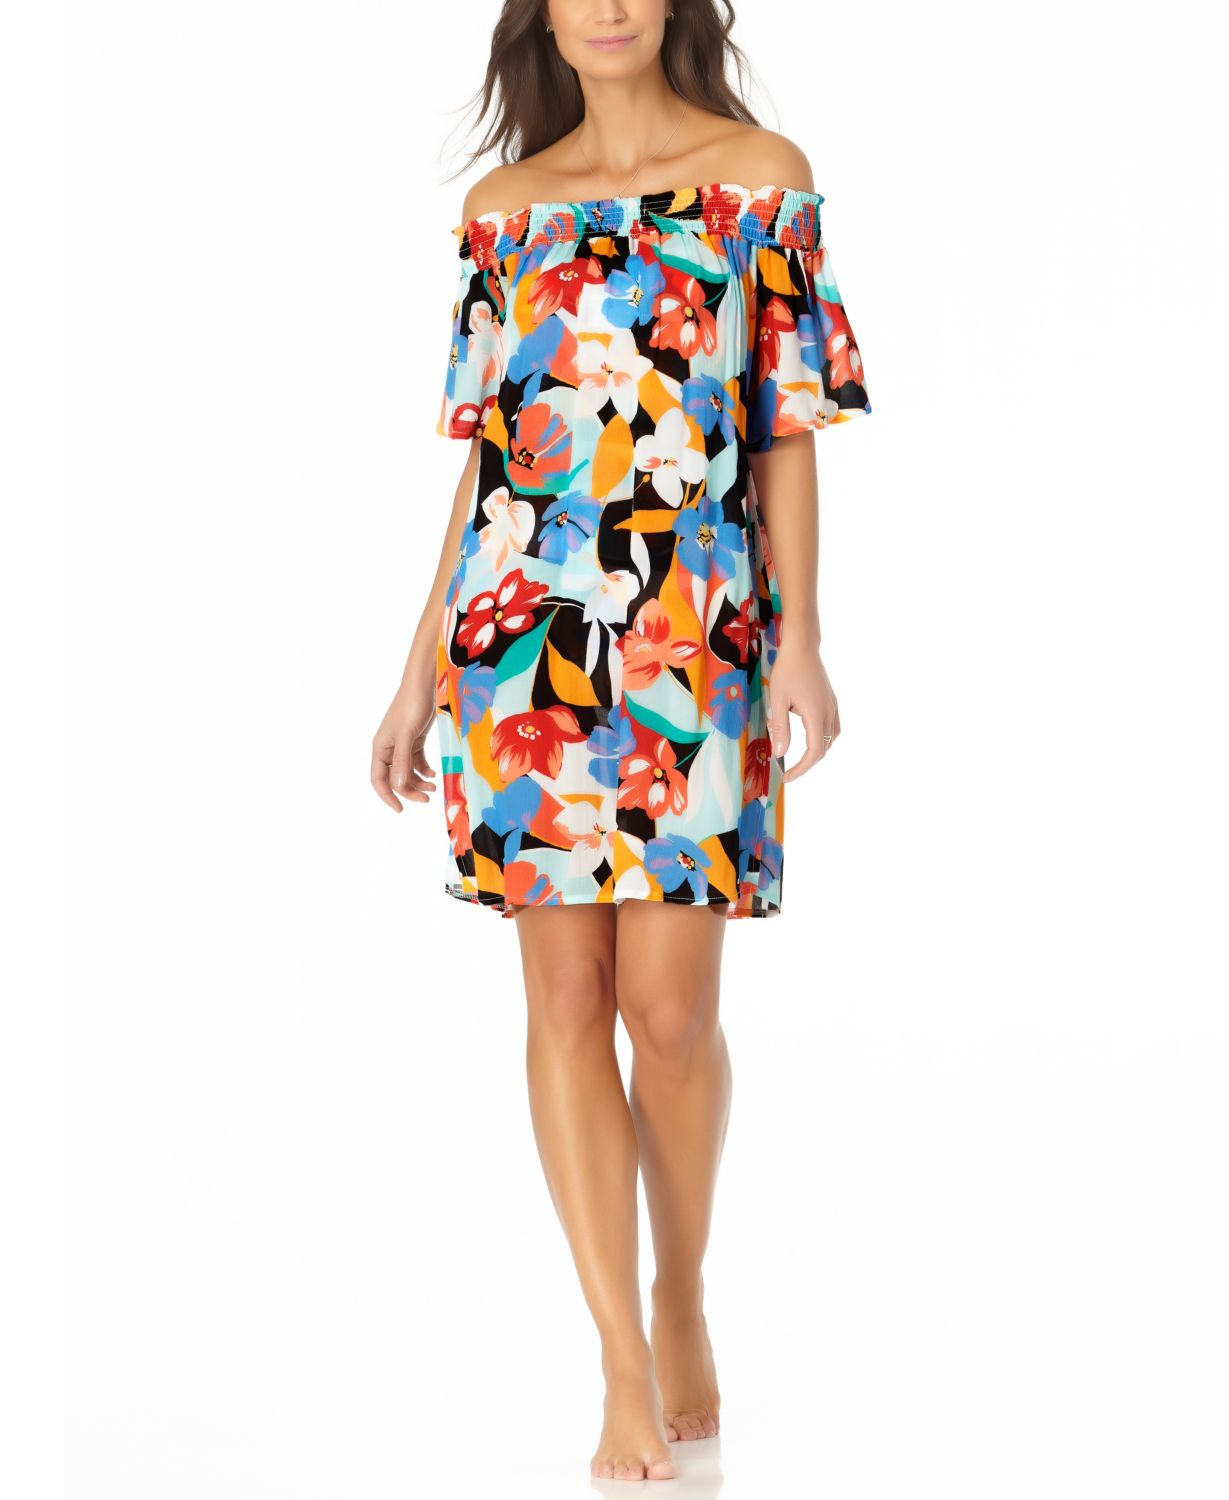 Anne Cole Smocked Off the Shoulder Cover Up Dress & Reviews - Swimsuits & Cover-Ups - Women - Macy's